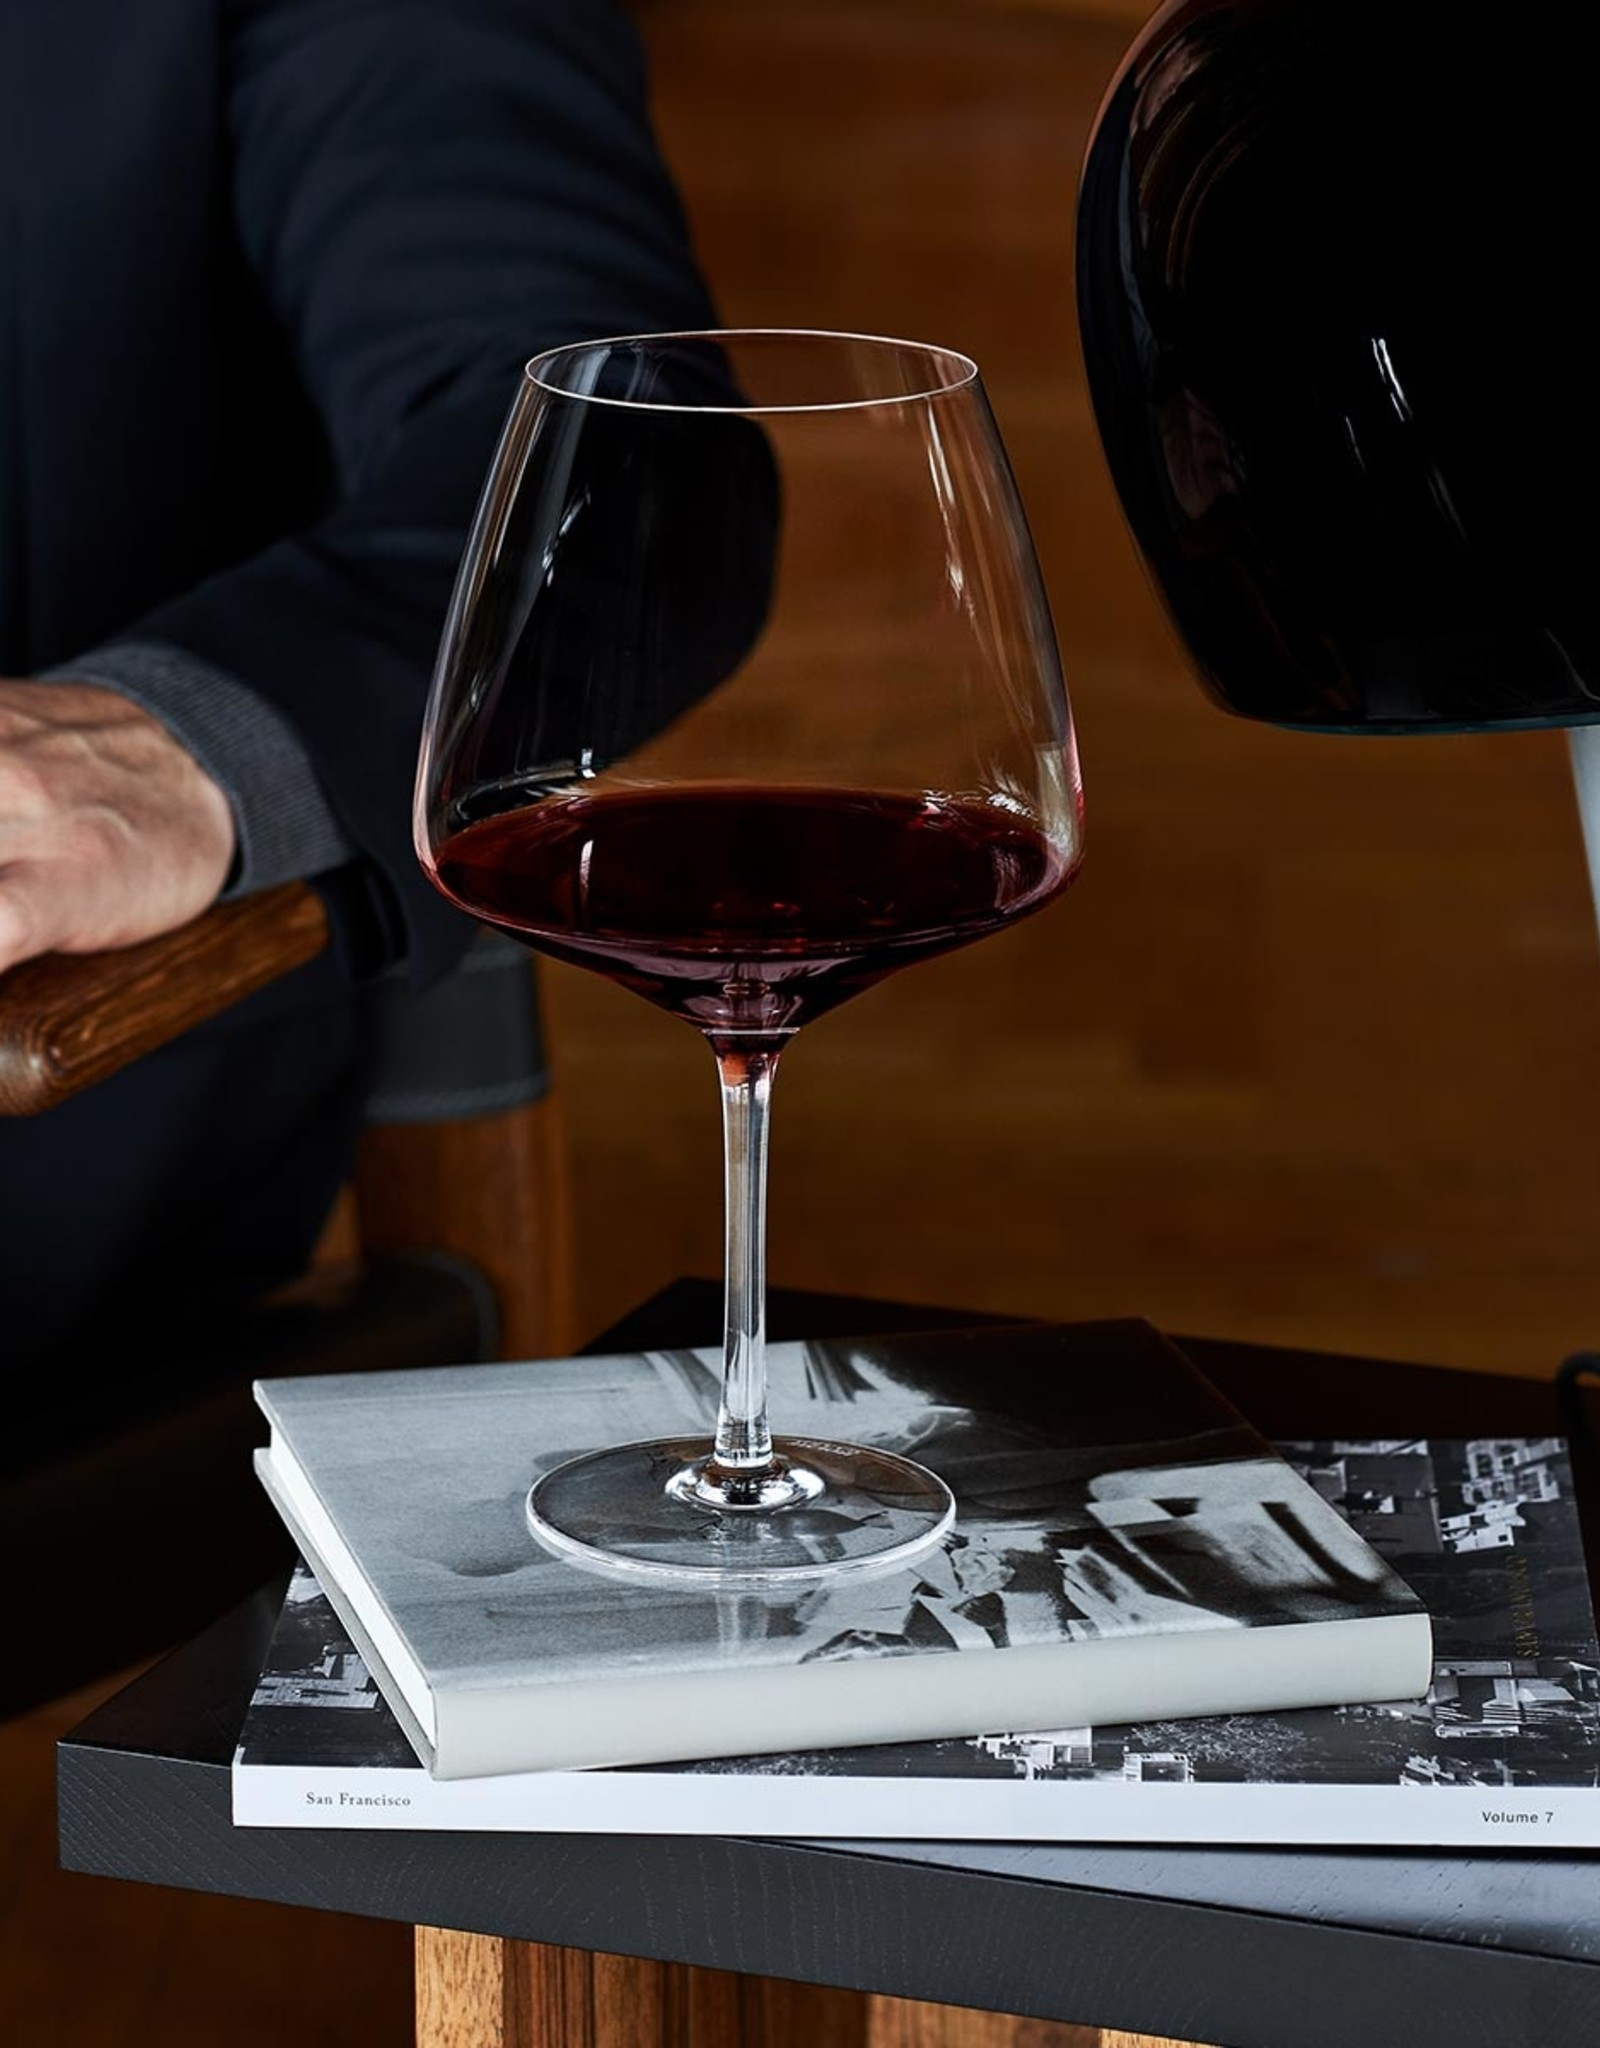 Perfection The Bowl Wine Glass by Tom Nybroe |1.4L